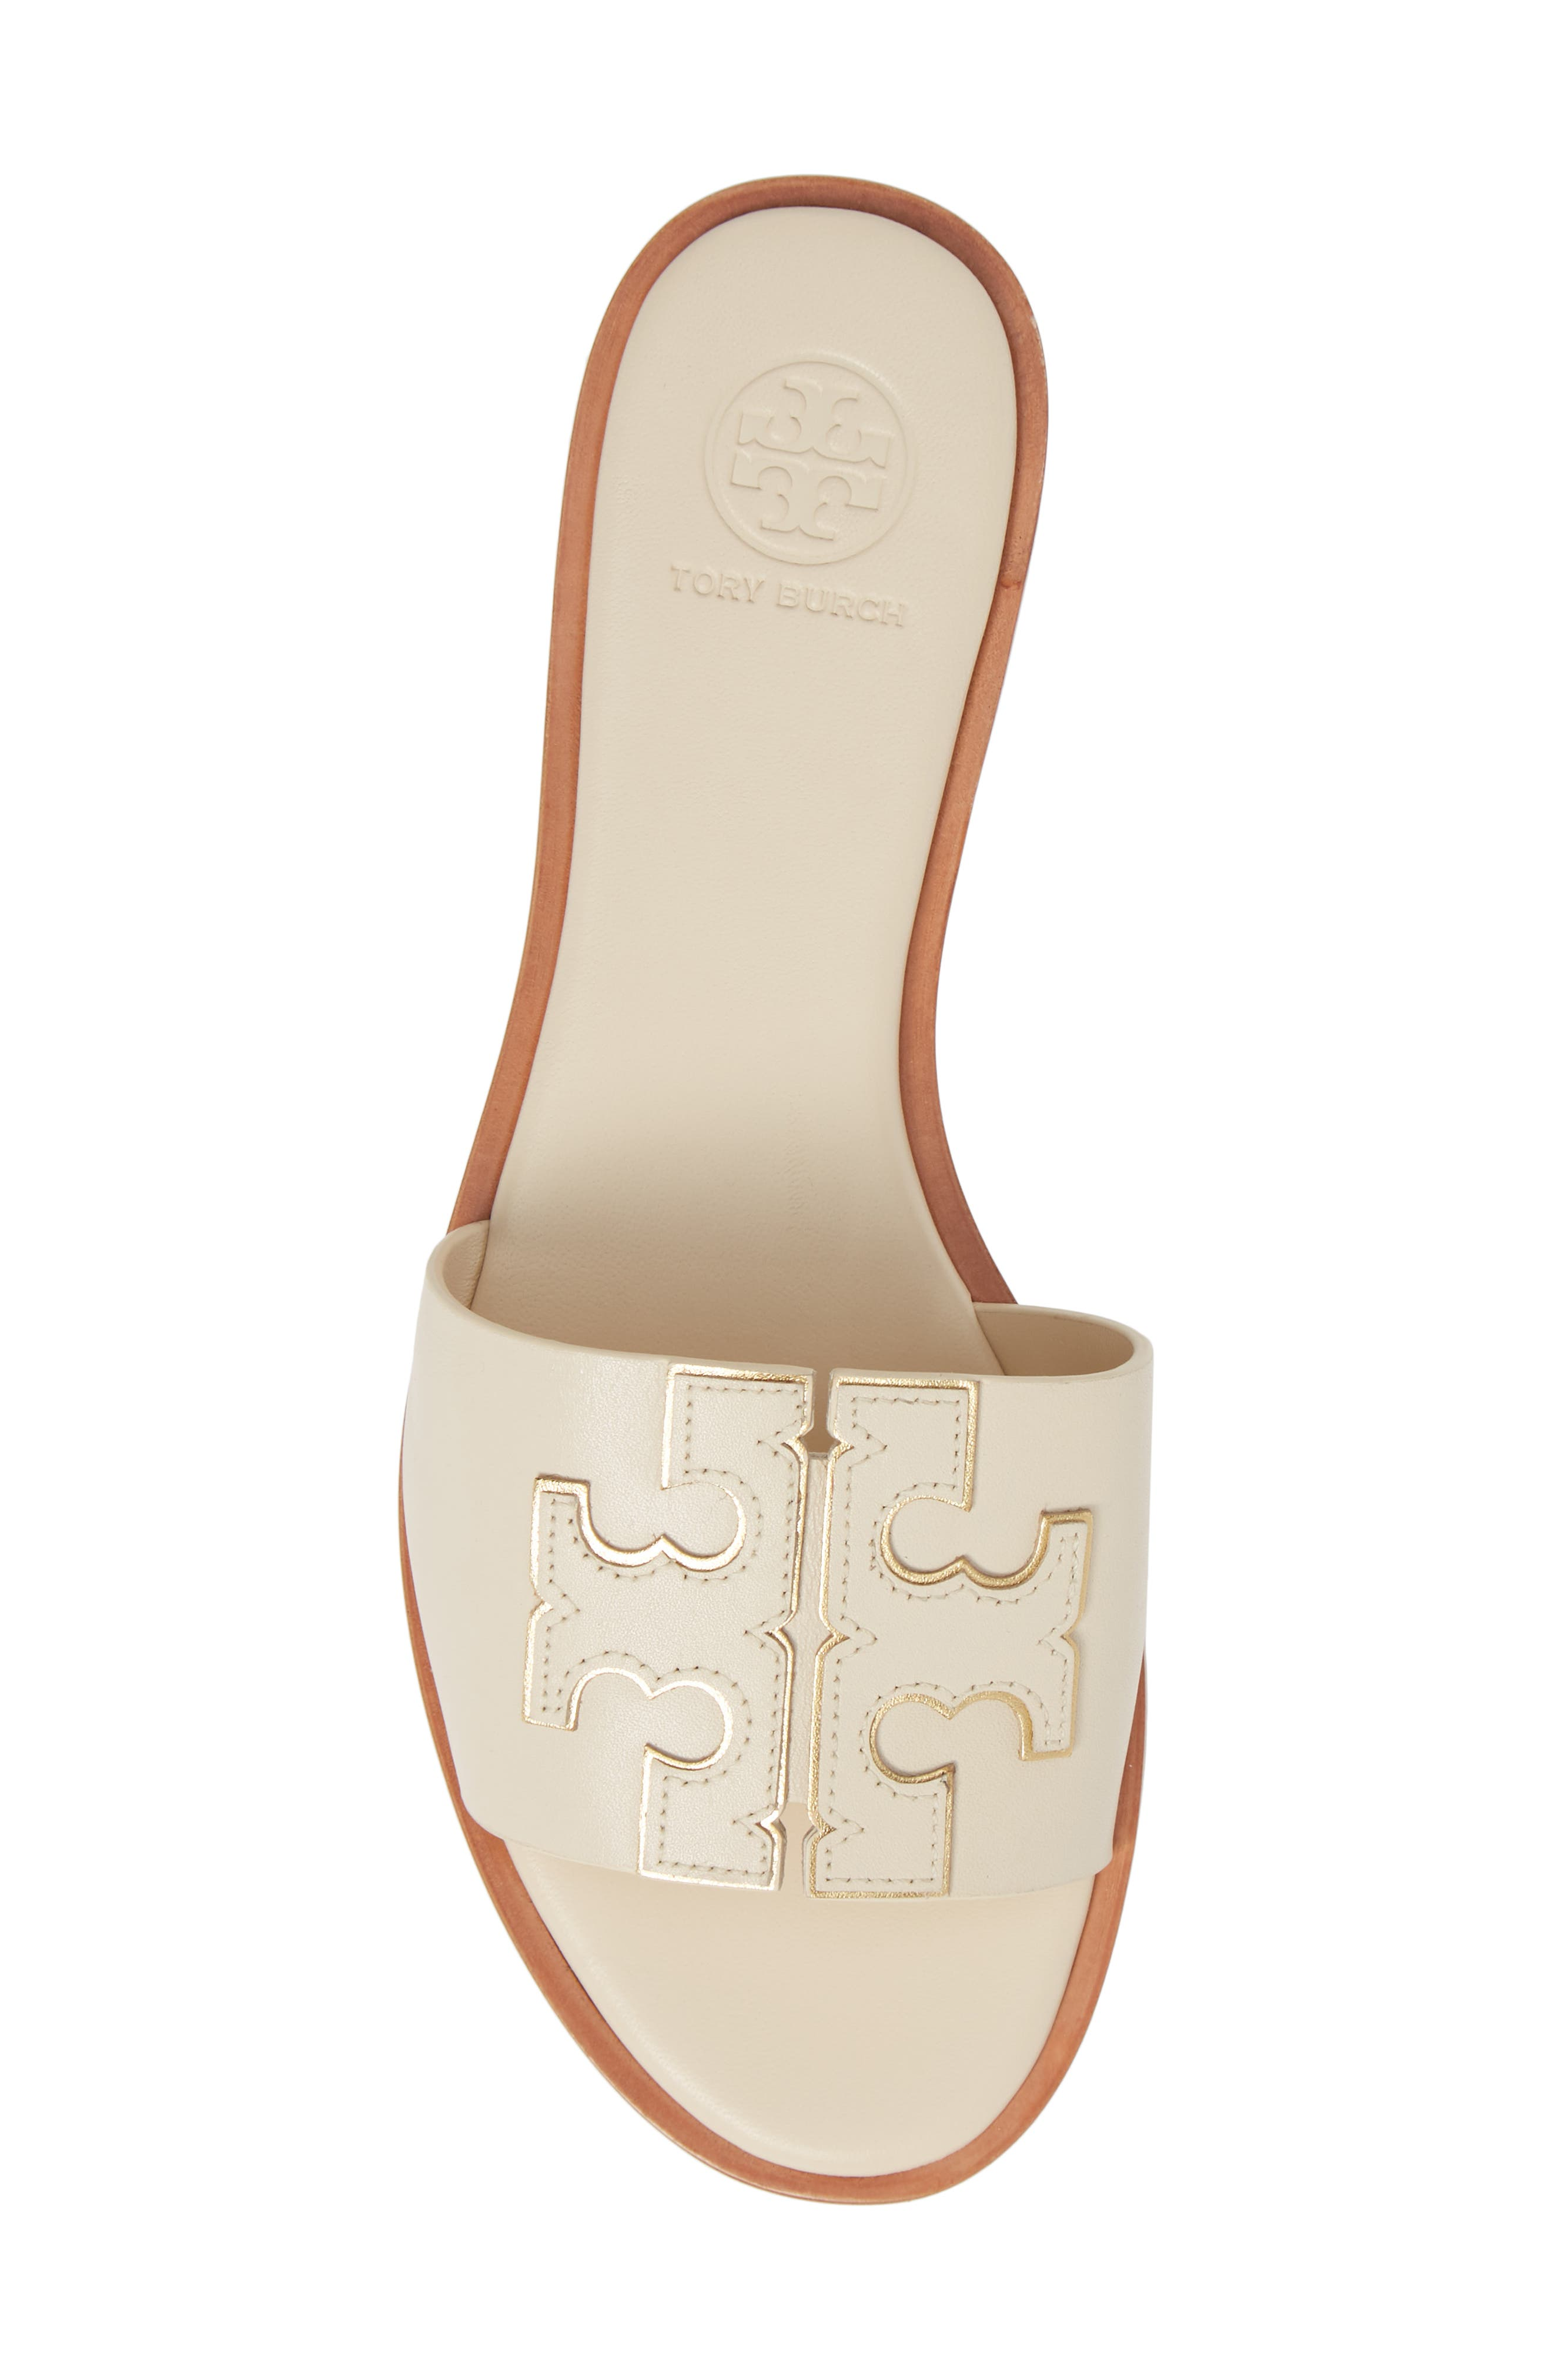 TORY BURCH, Ines Slide Sandal, Alternate thumbnail 5, color, NEW CREAM/ GOLD